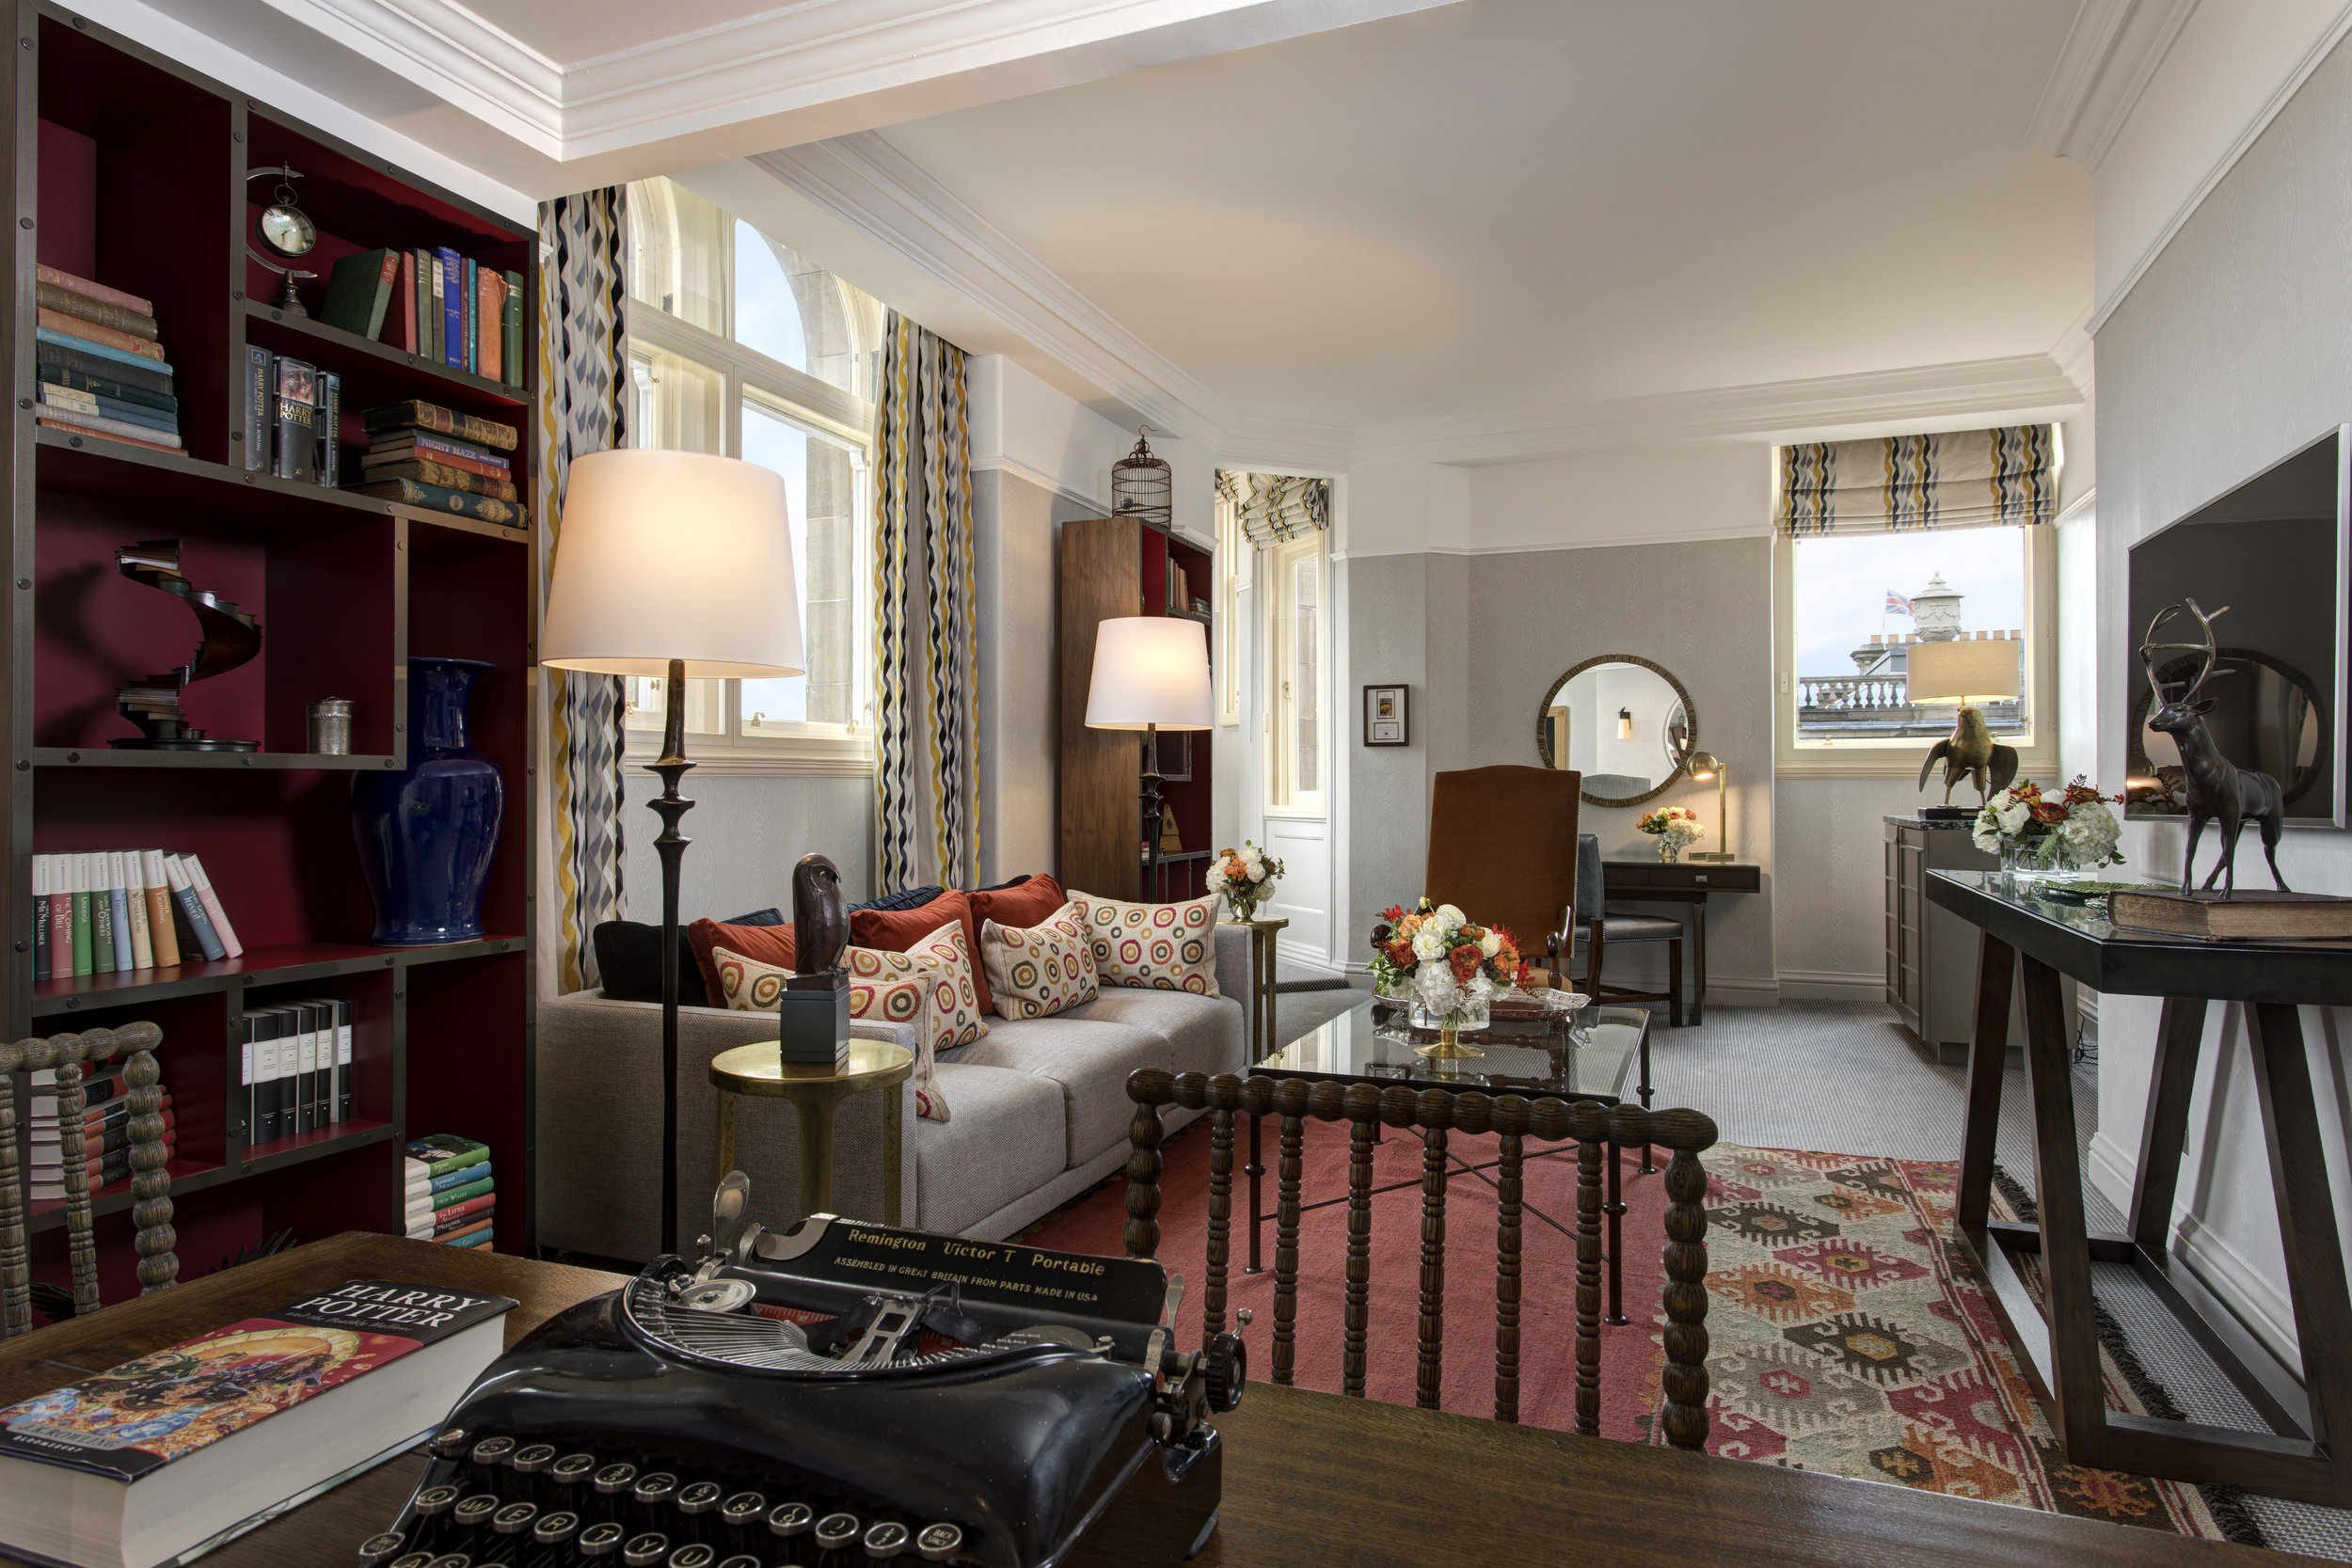 8 RFH The Balmoral - JK Rowling Suite 5644 Jul 17.JPG